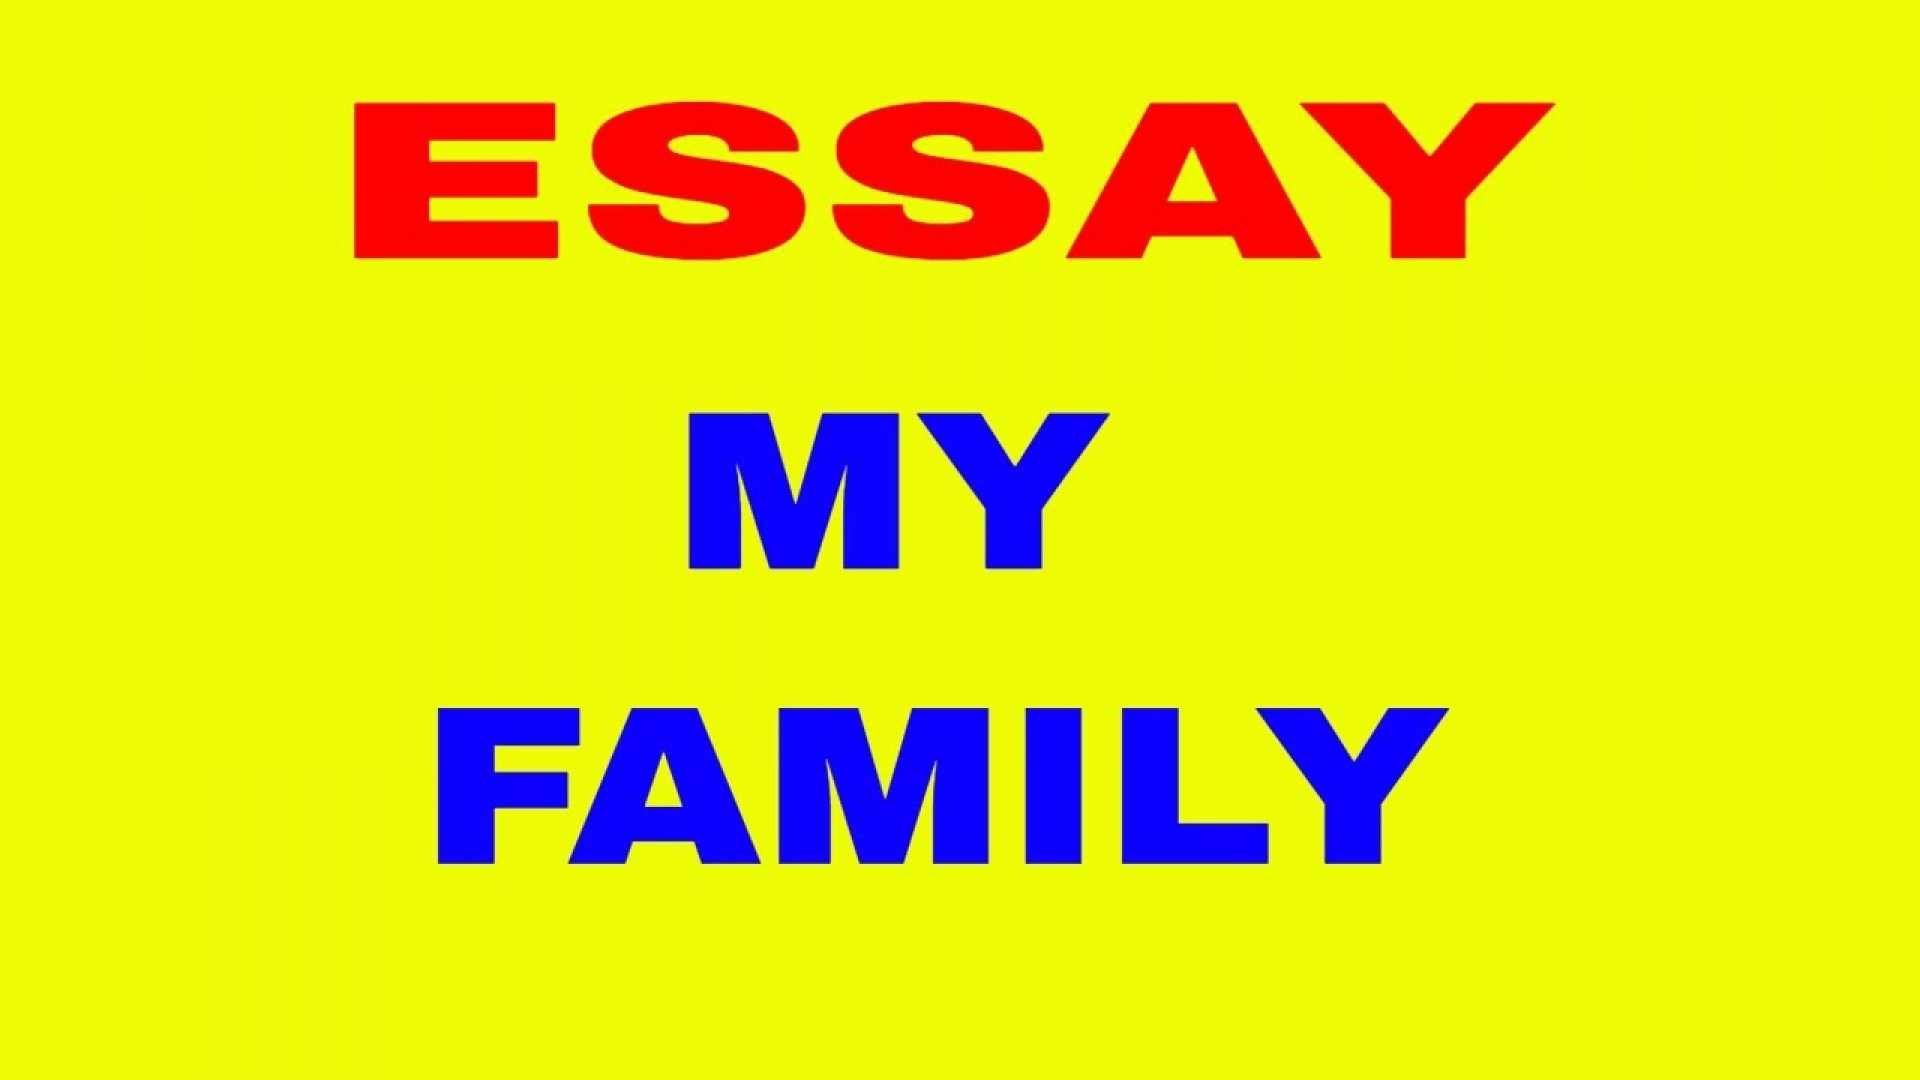 013 Essay Example Maxresdefault My Formidable Family I Love For Class 2 Small On In French Grade 1920